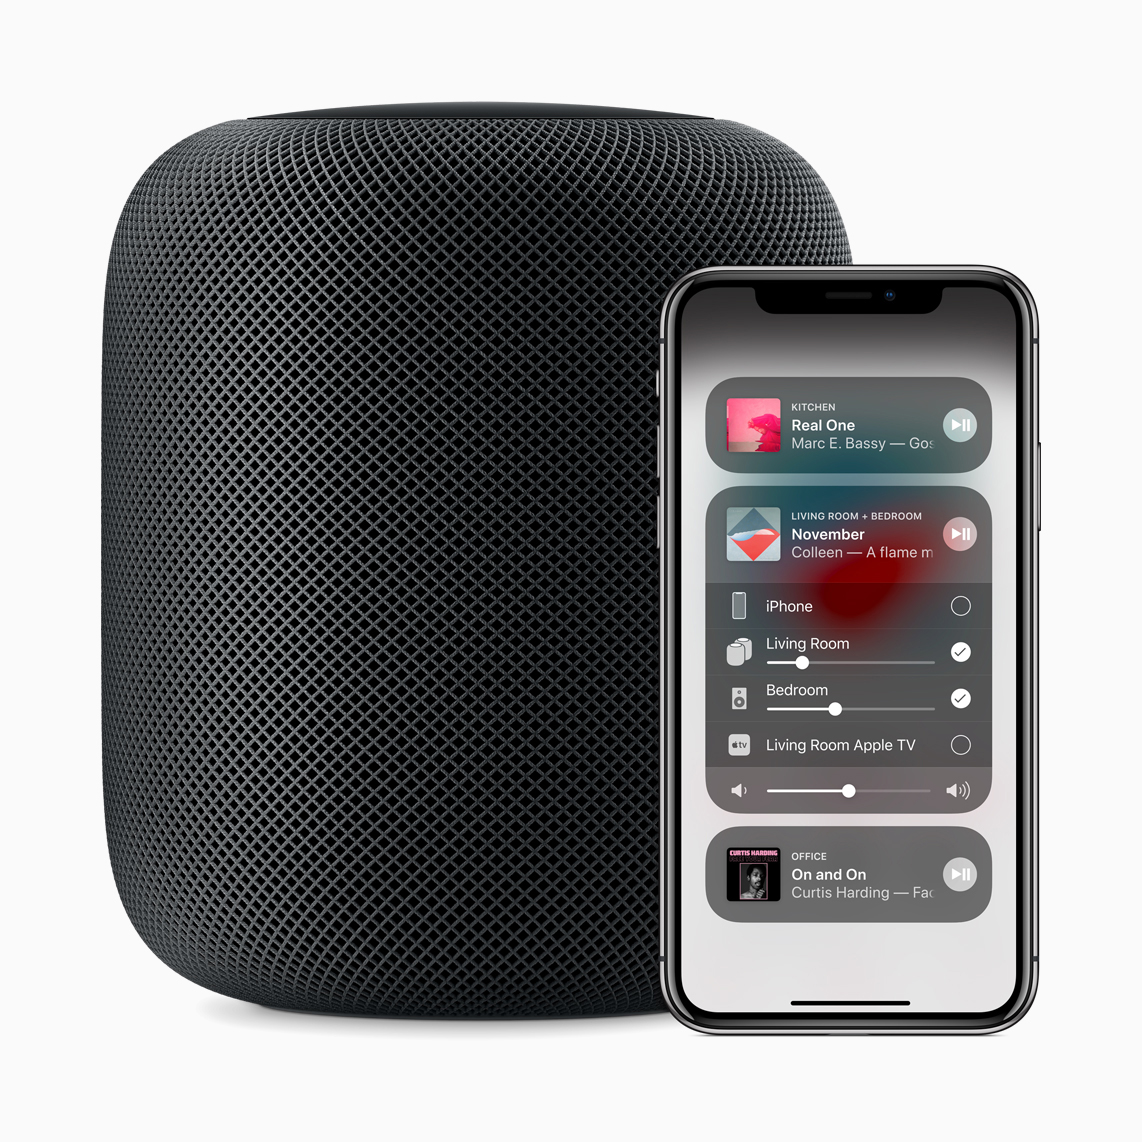 iOS 11.4 HomePod